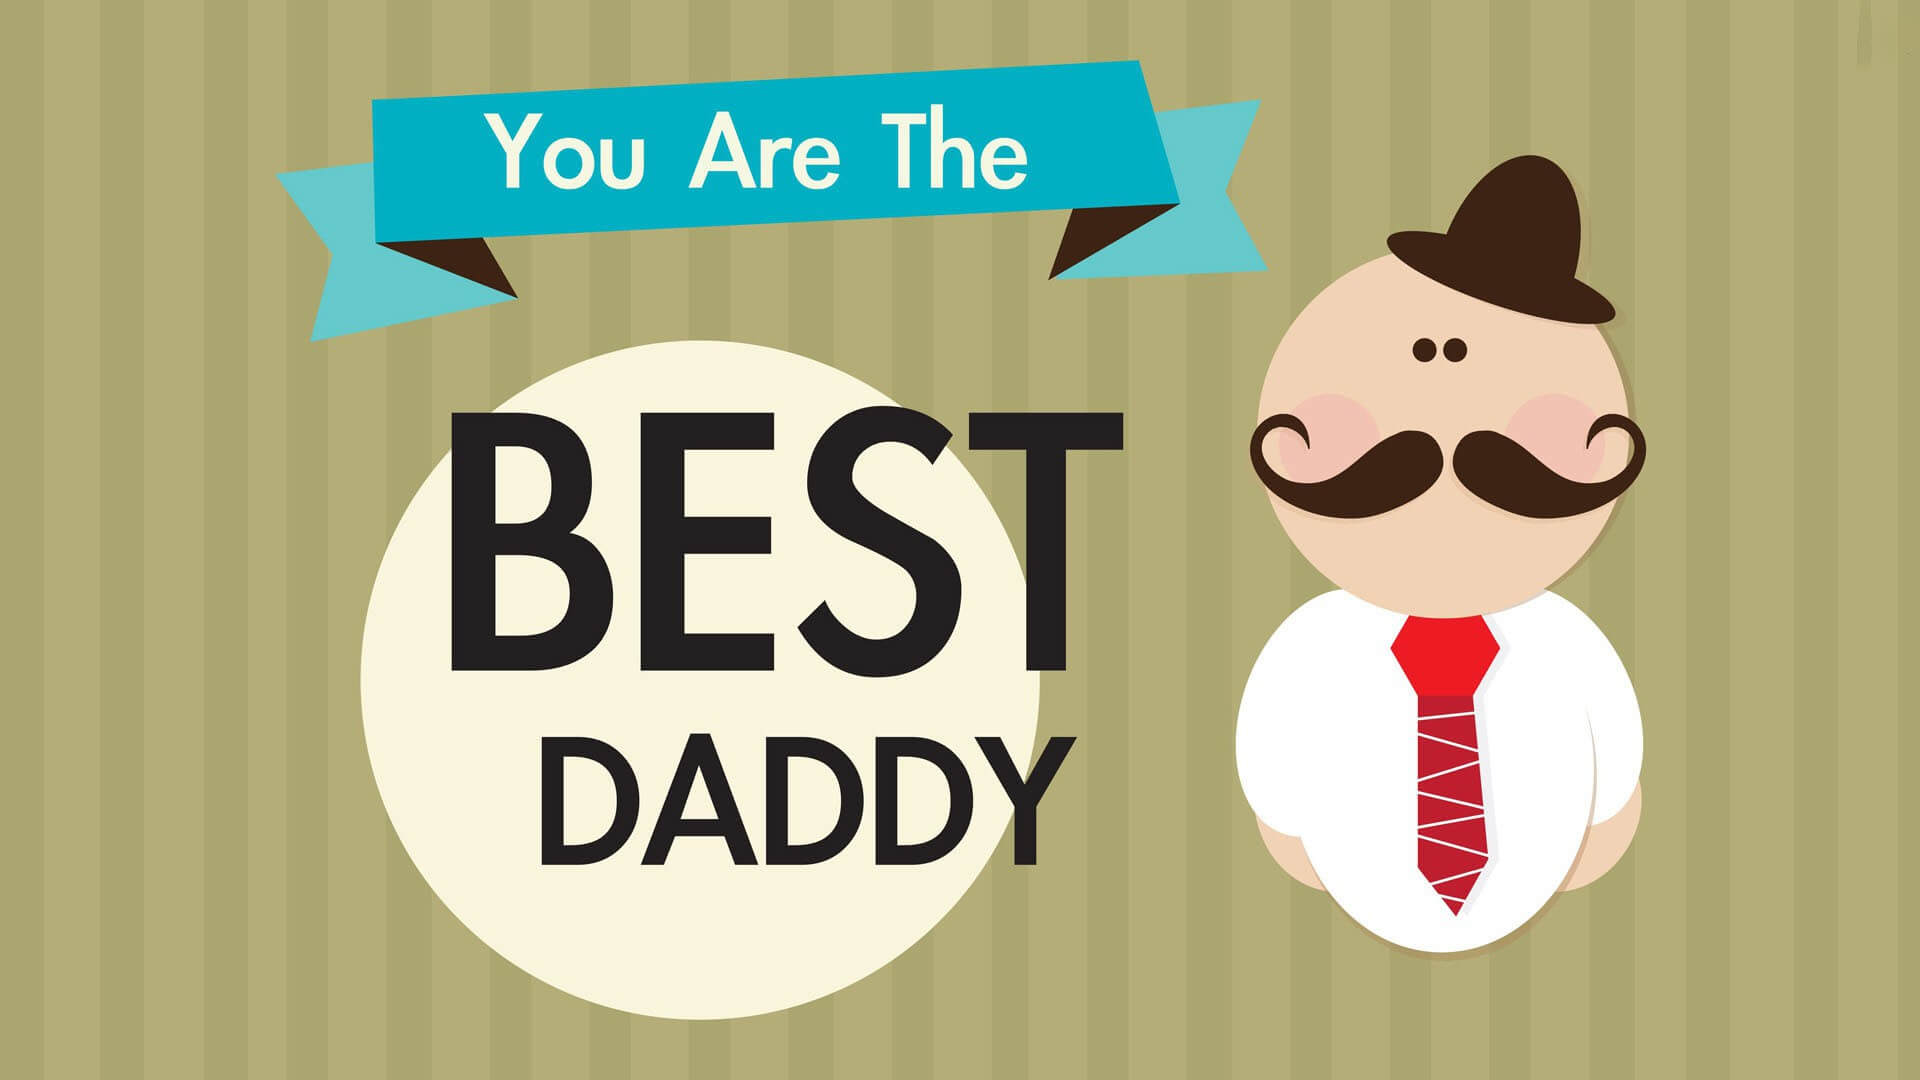 happy fathers day greetings cartoon wallpaper hd